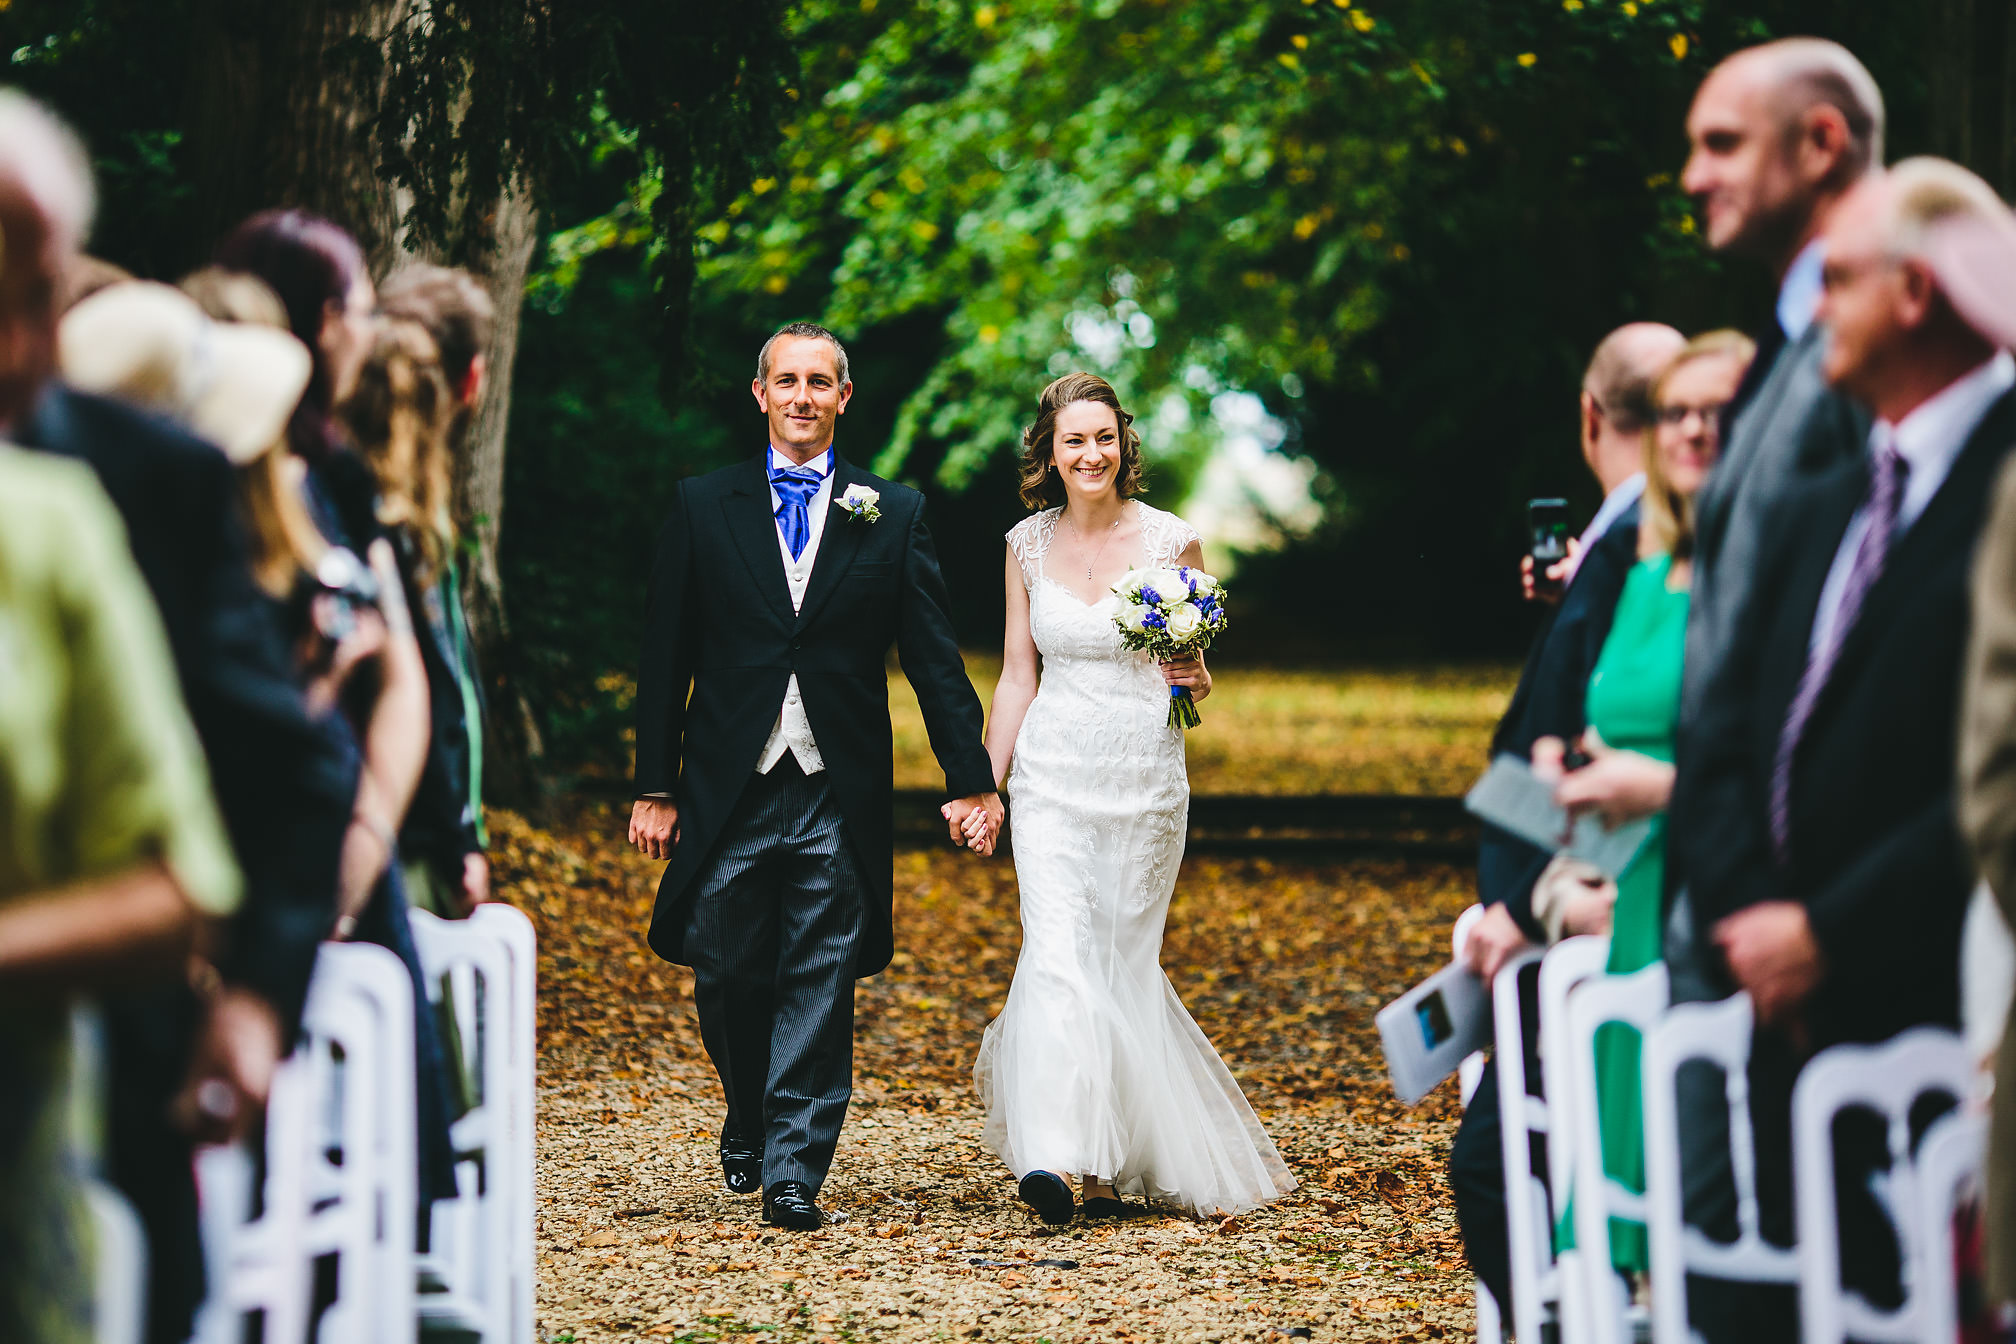 Couple arrive together for their outdoor wedding